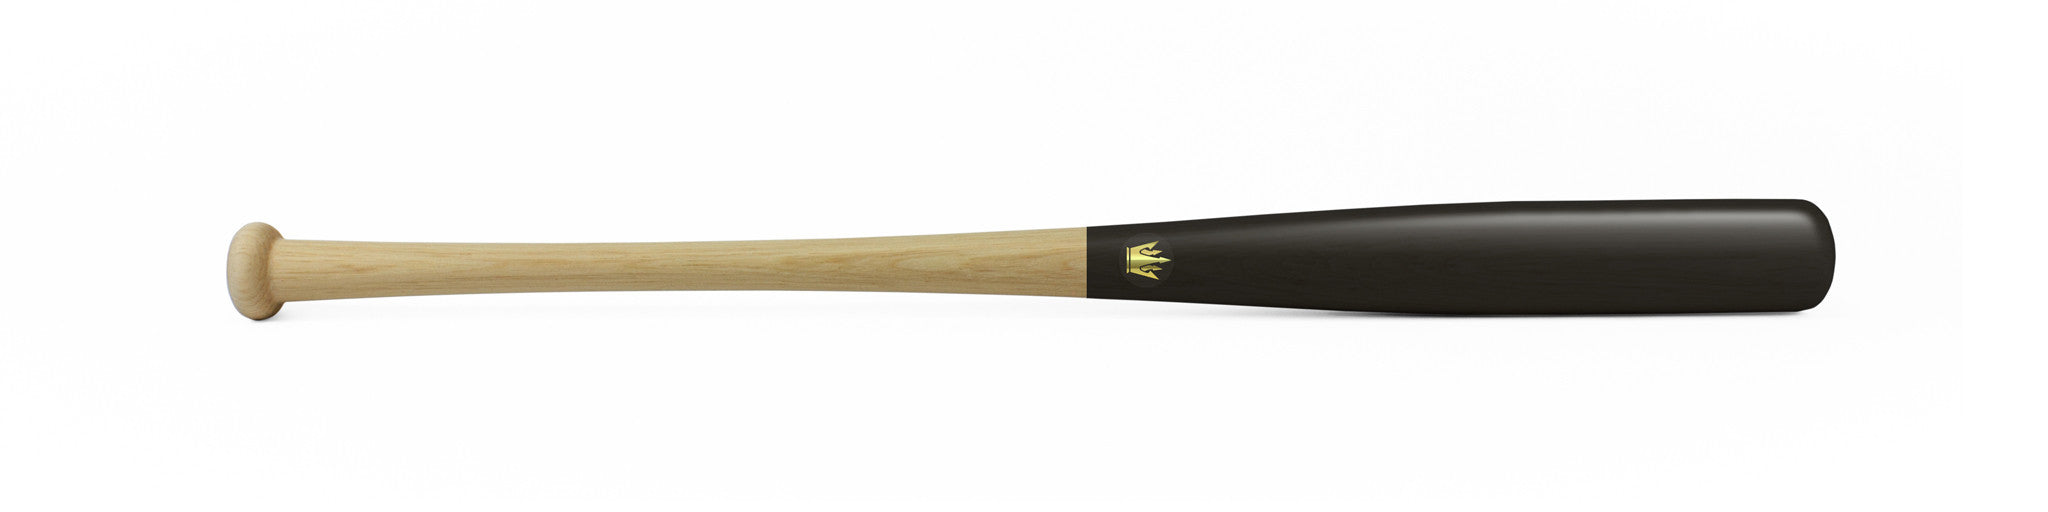 Wood bat - Birch model L10 Black Standard - 22